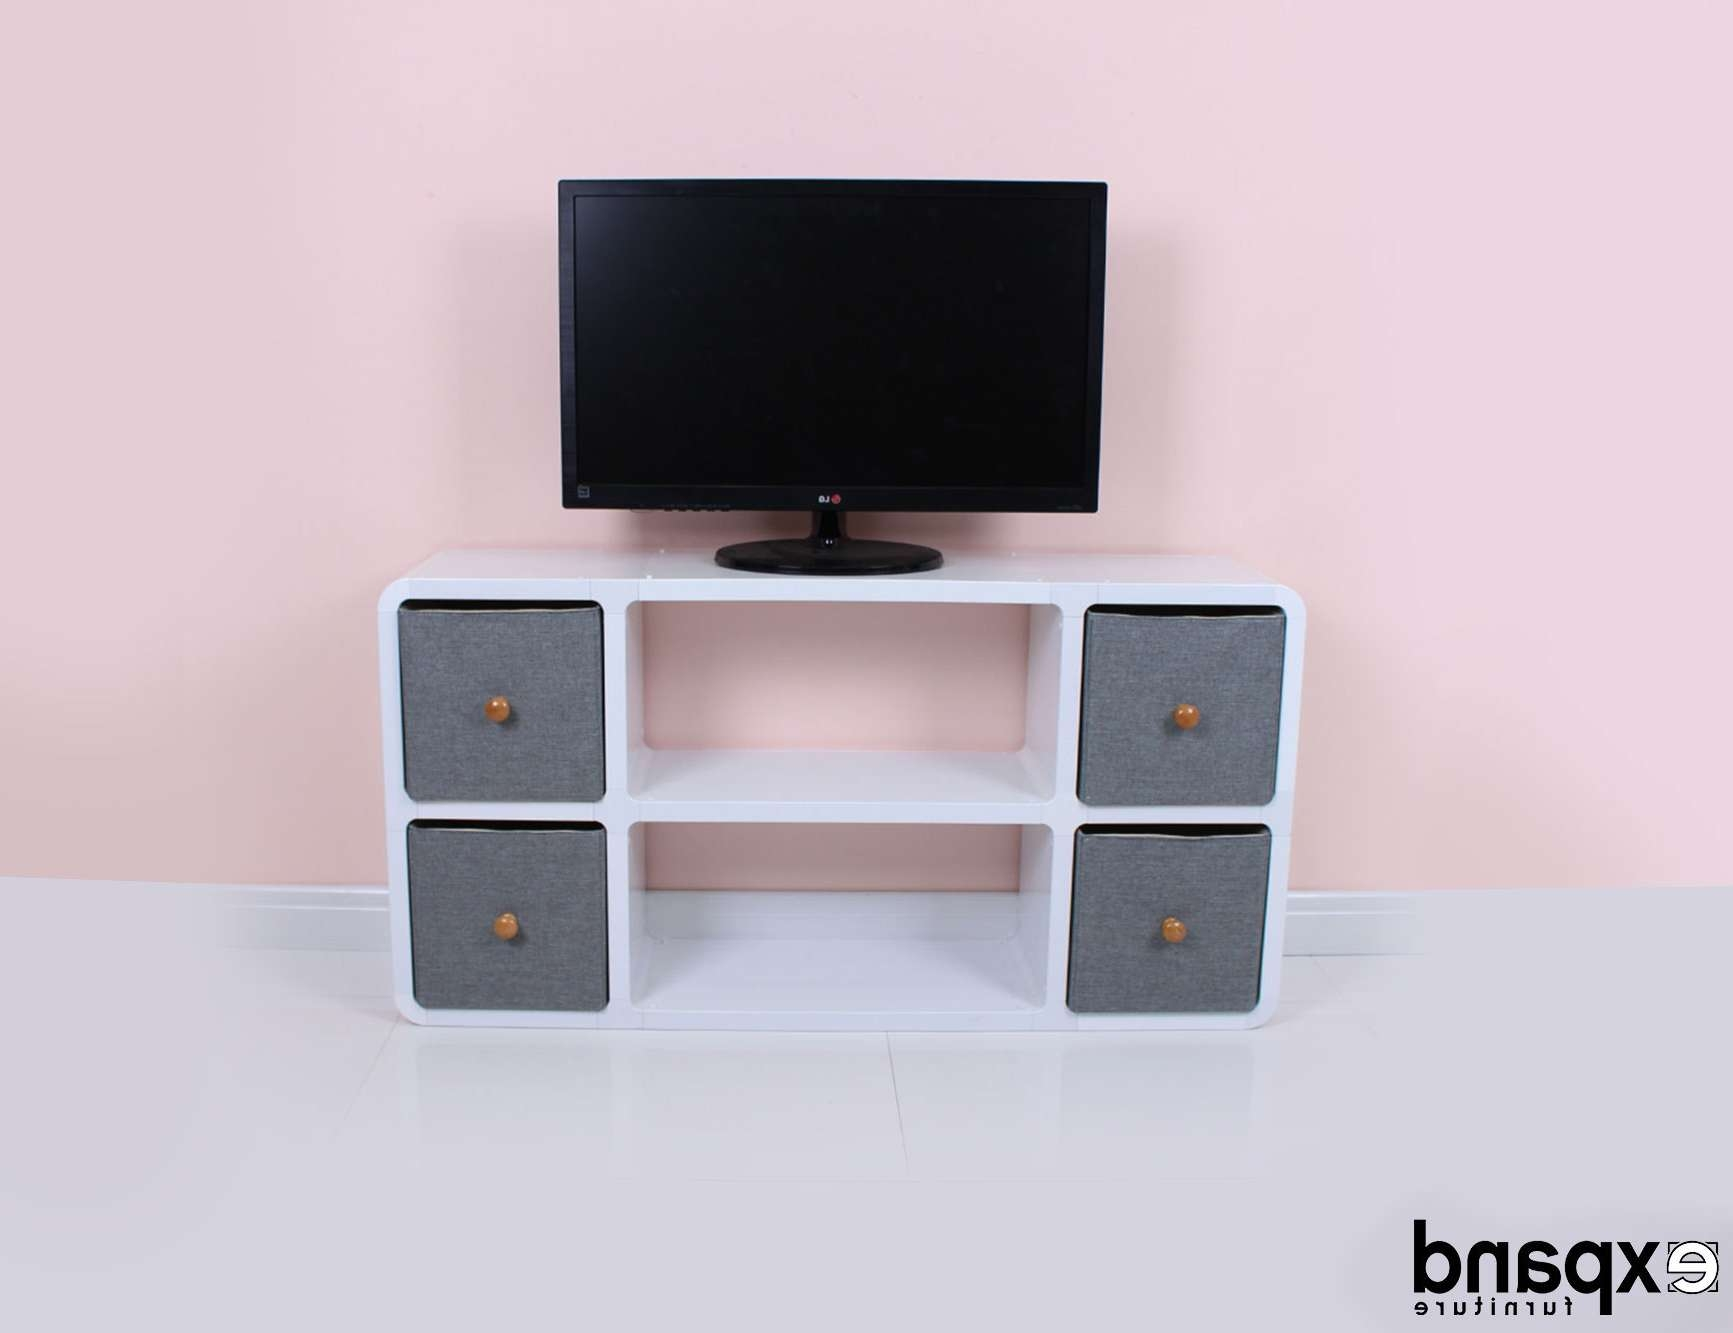 Tall Skinny Tv Stand Within Tall Skinny Tv Stands (View 4 of 15)